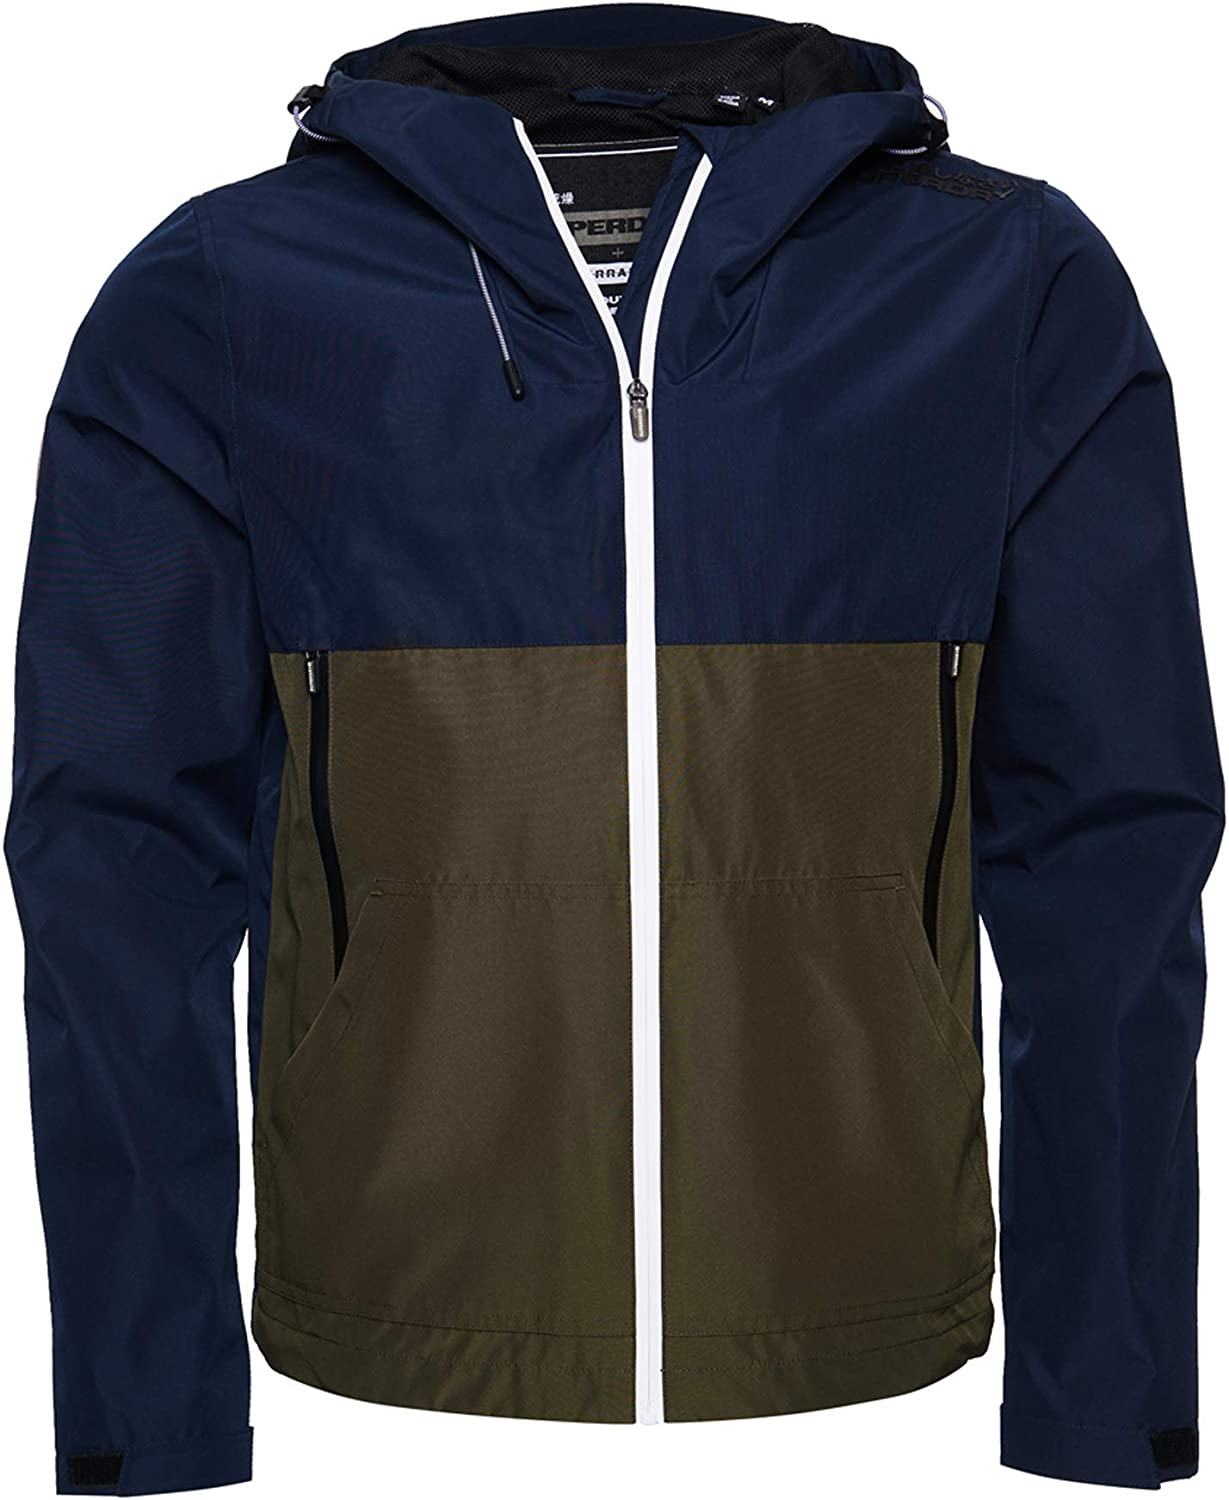 Superdry Men's Tech Colourblock Blue Free shipping New Year-end gift Jacket Elite